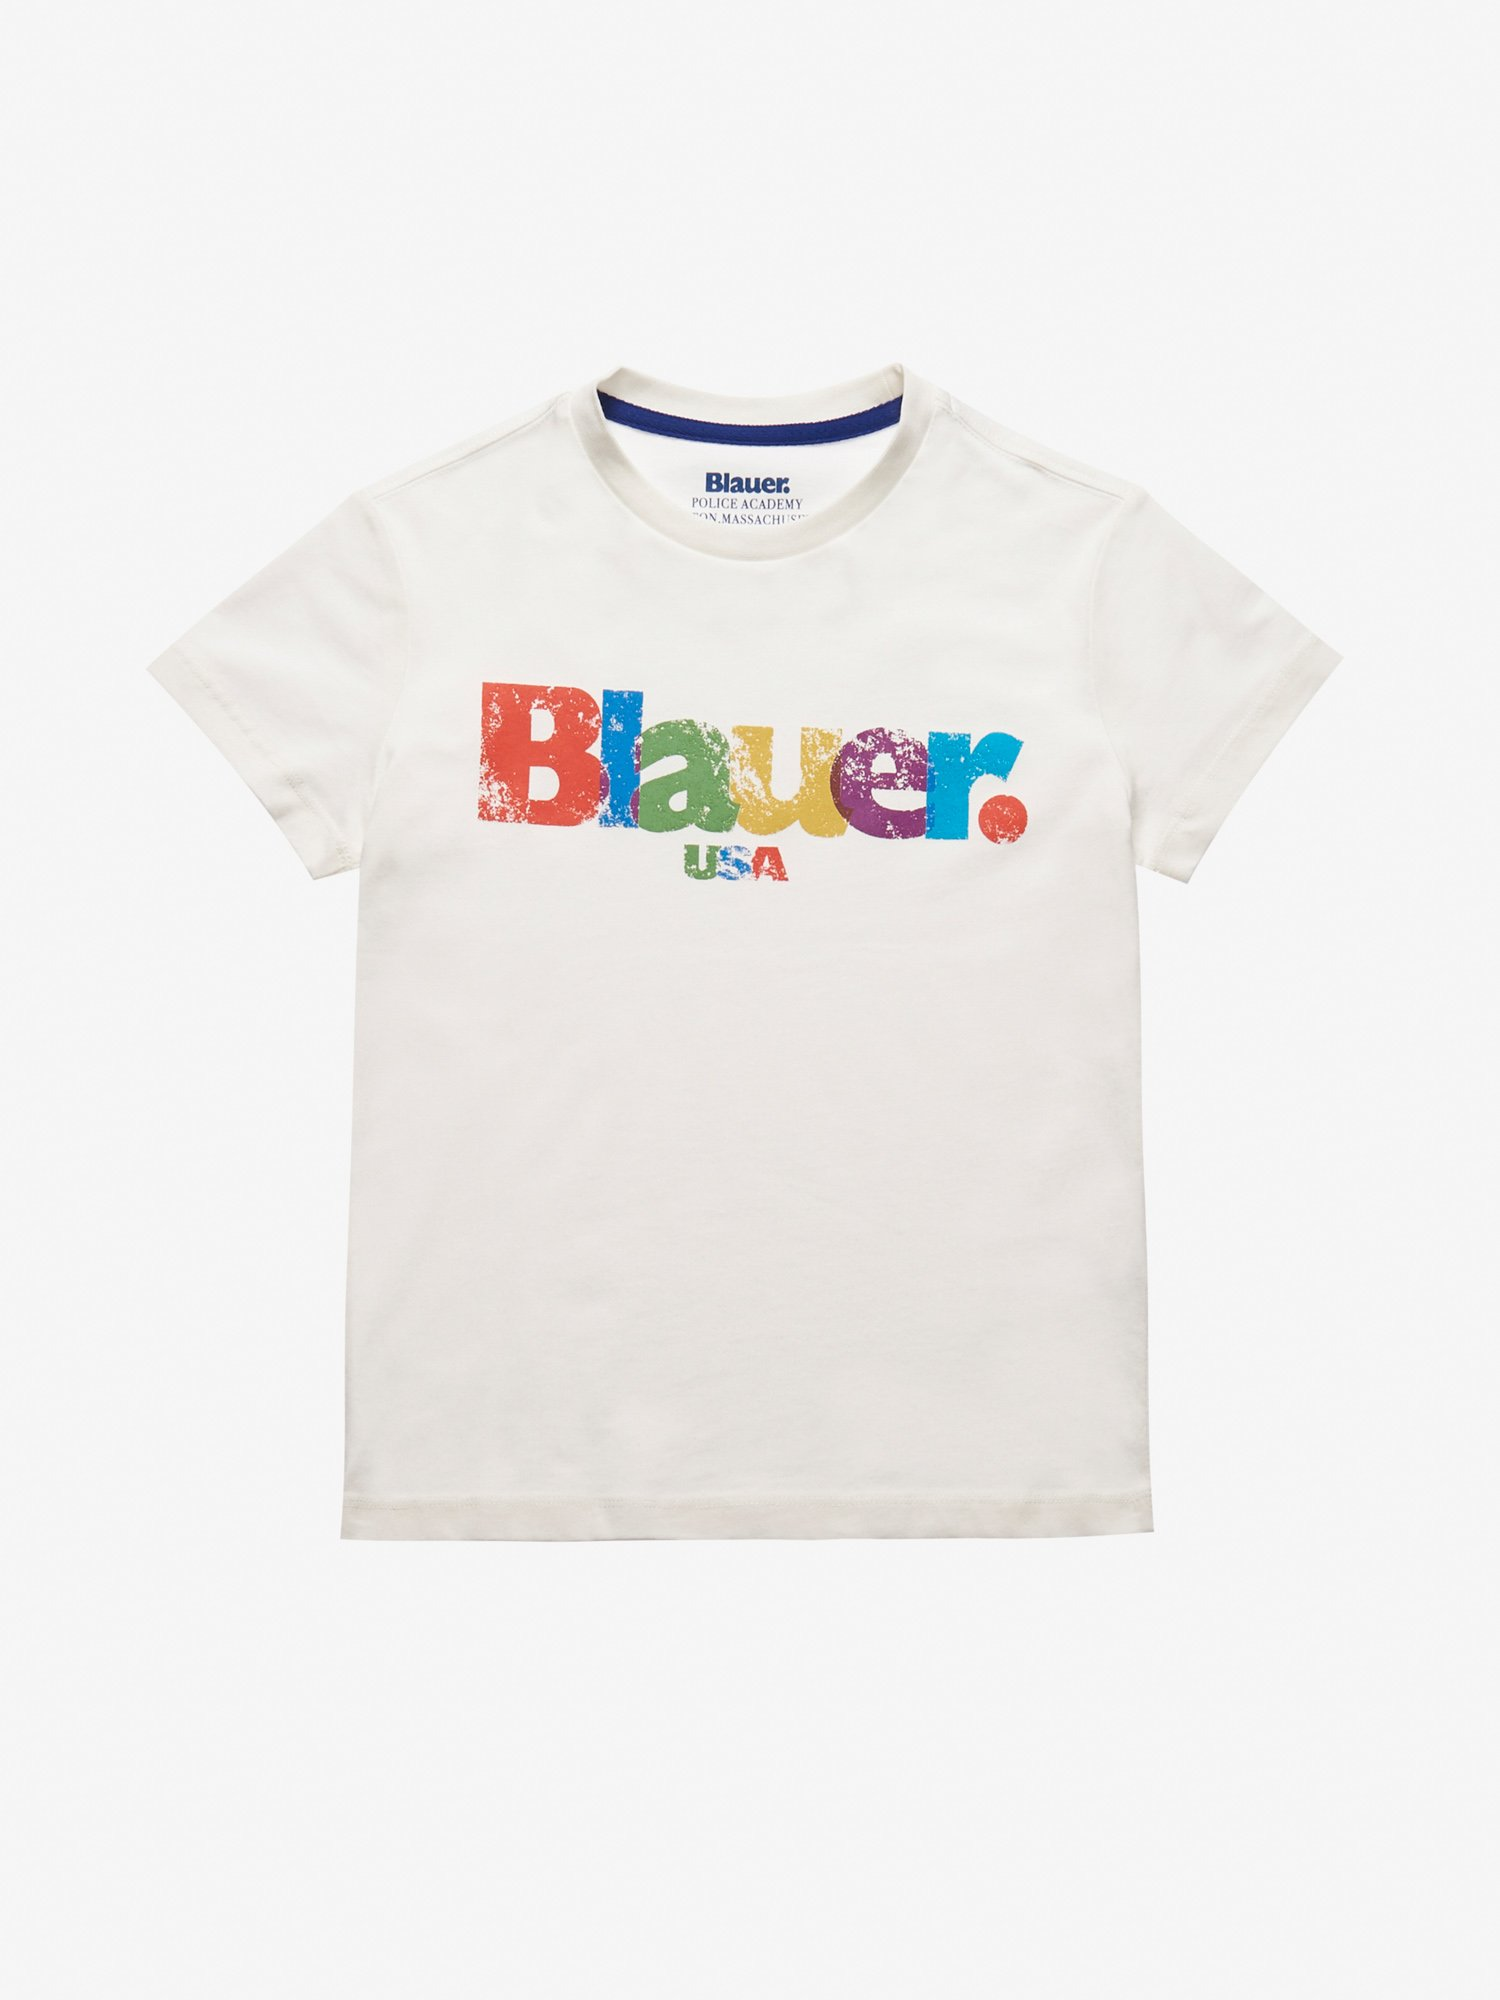 JUNIOR MULTICOLOR BLAUER T-SHIRT - Blauer